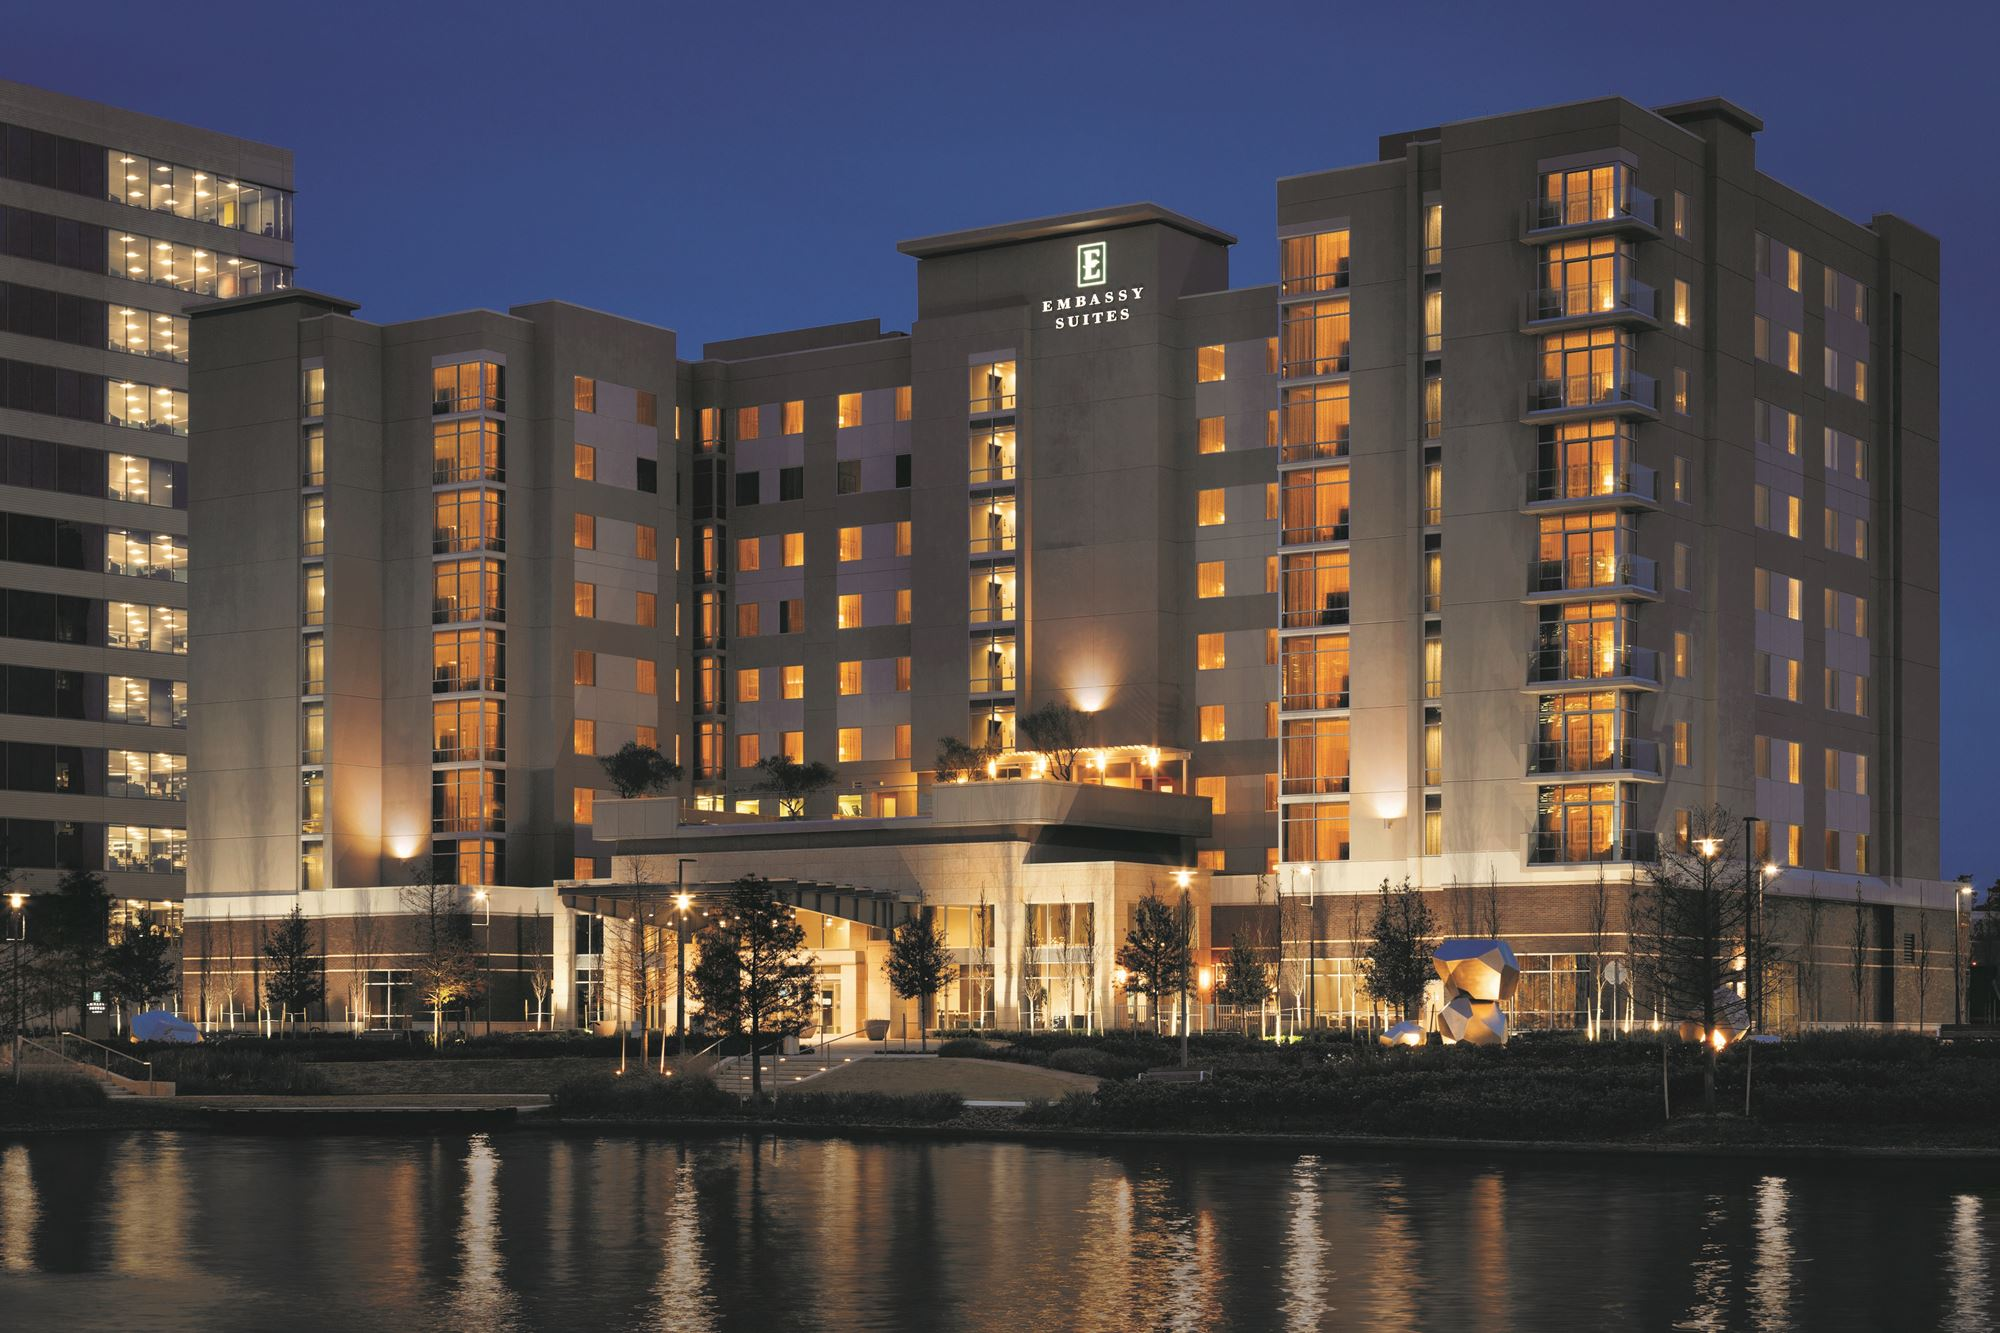 The Embassy Suites by Hilton The Woodlands at Hughes Landing